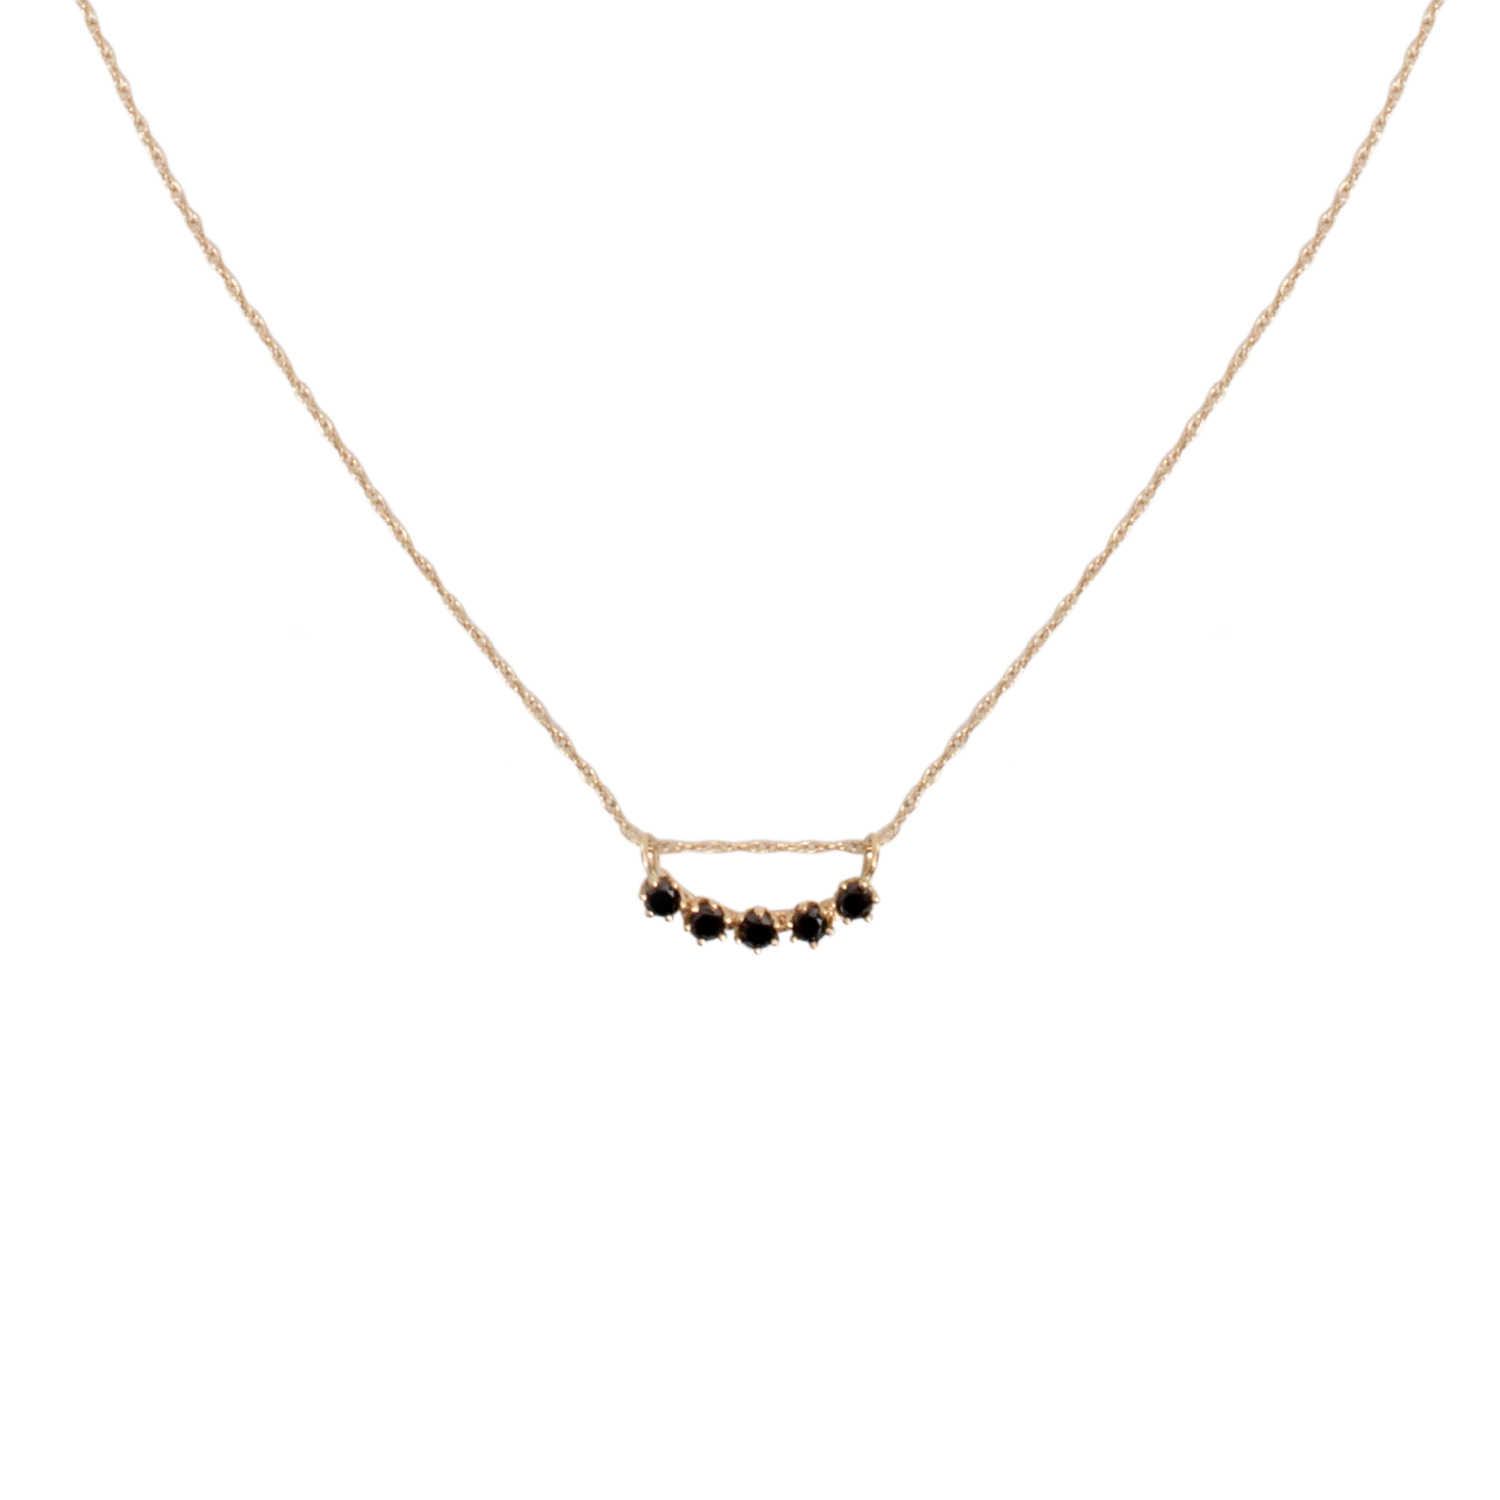 tiff stagni black pamono pearl necklace nektar sale at d by b diamond de for